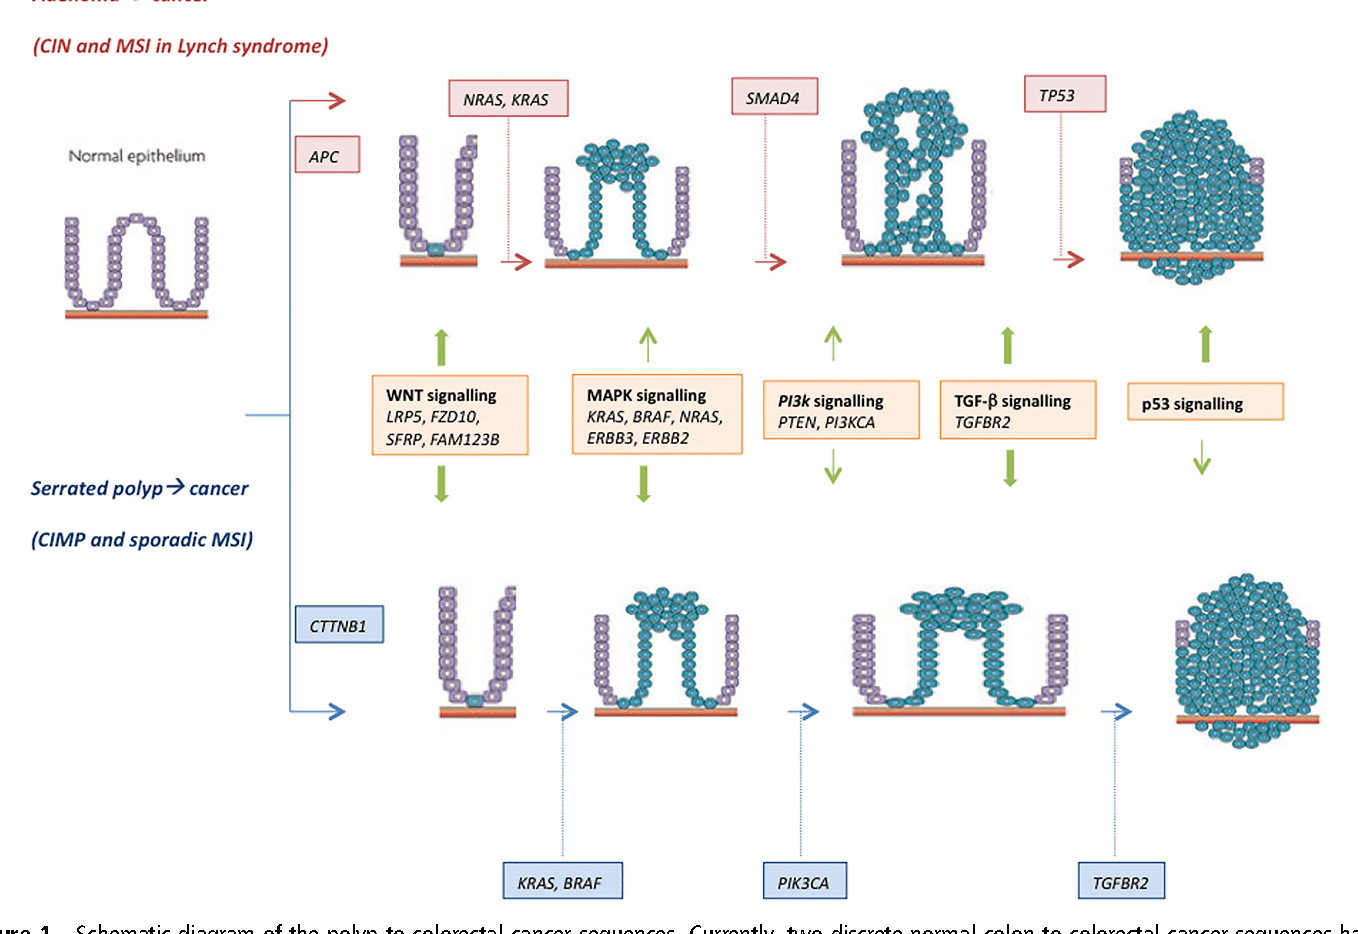 Figure 1 From Molecular Markers For Colorectal Cancer Screening